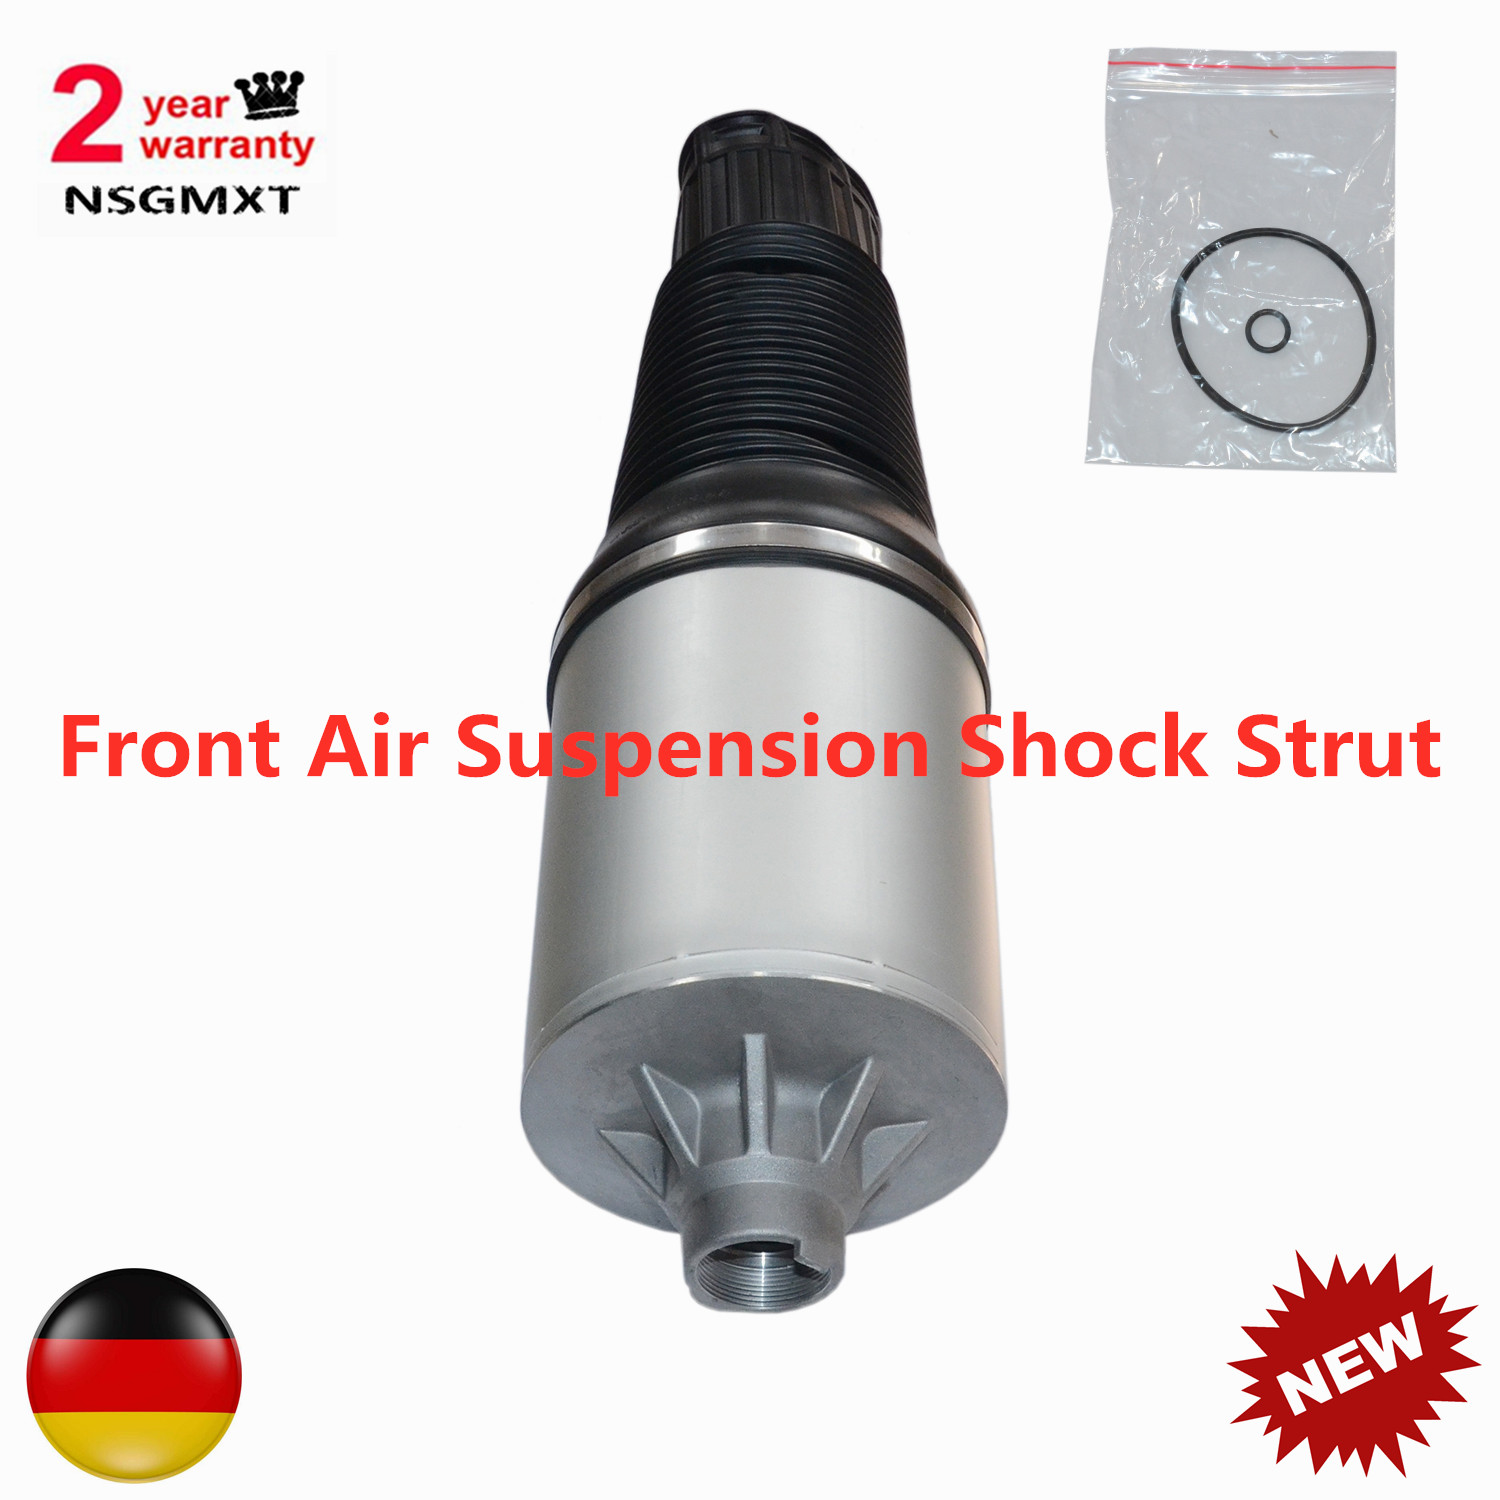 AP01 New Front Air Suspension <font><b>Shock</b></font> Strut For <font><b>Audi</b></font> <font><b>A8</b></font>/S8 D3 4E 2002-2010 4E0616039 4E0616039AF 4E0616039AH 4E0616039AB image